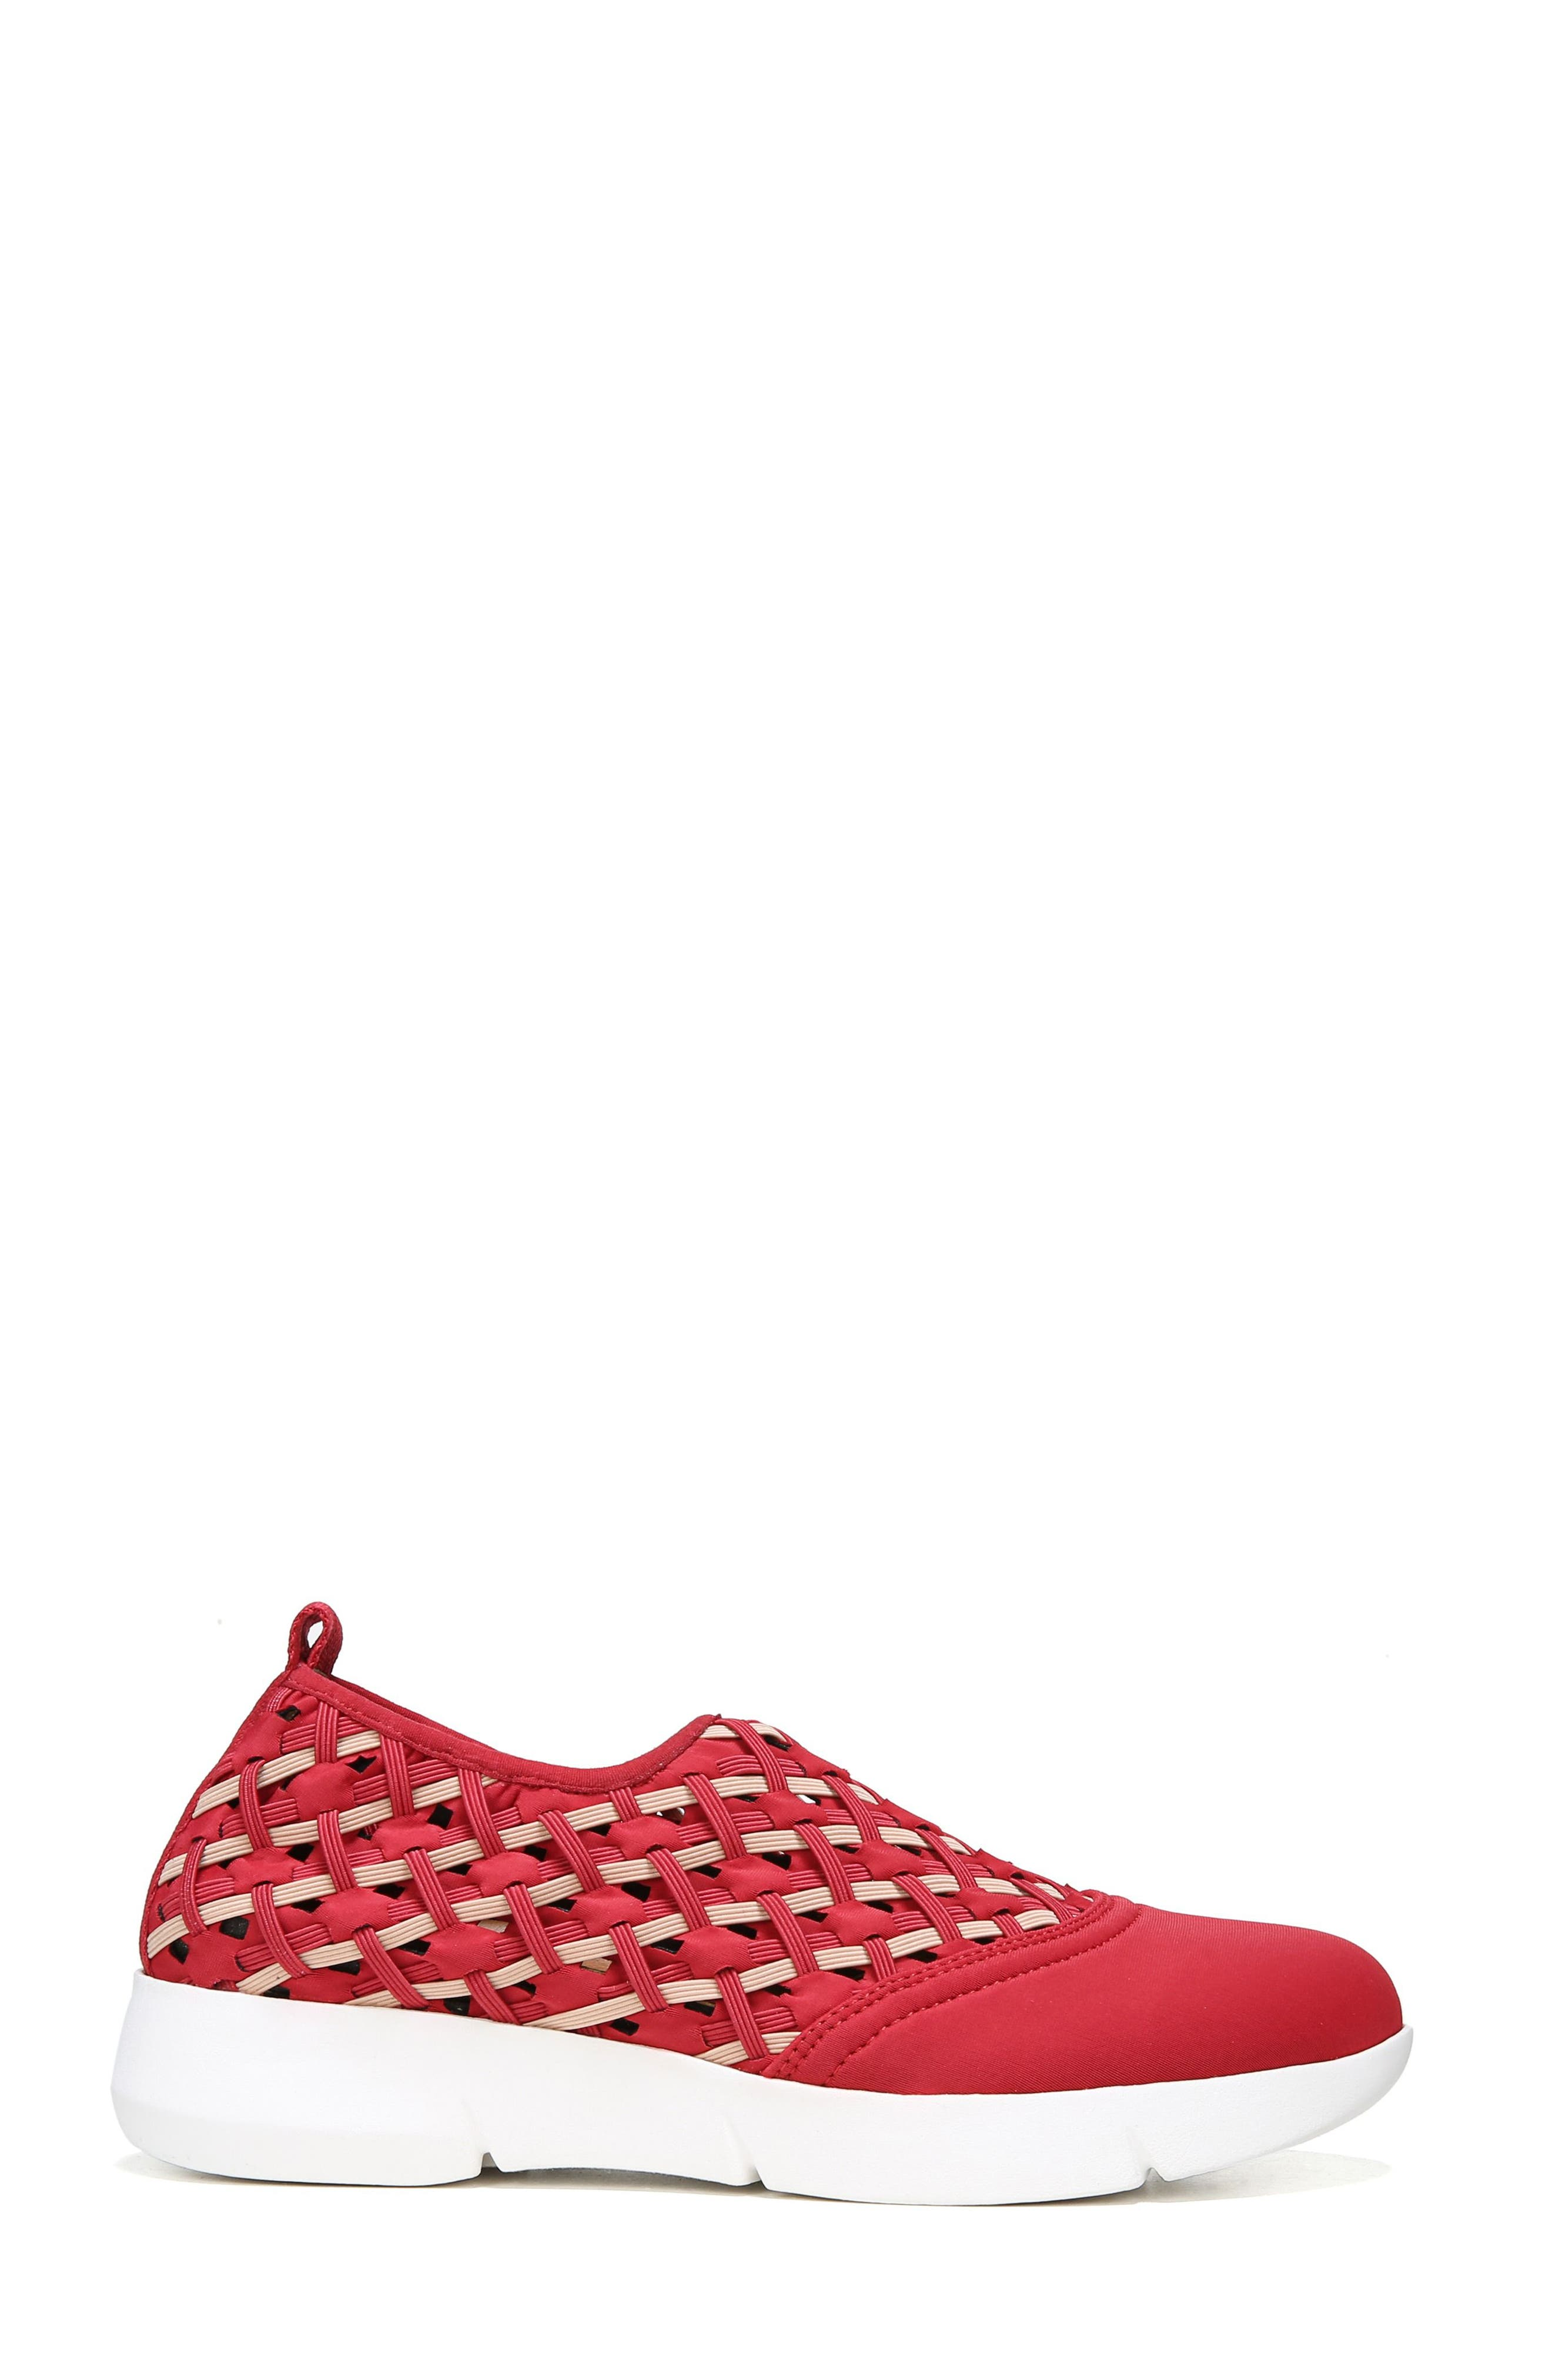 Fallan Woven Slip-On Sneaker,                             Alternate thumbnail 3, color,                             Deep Red Leather